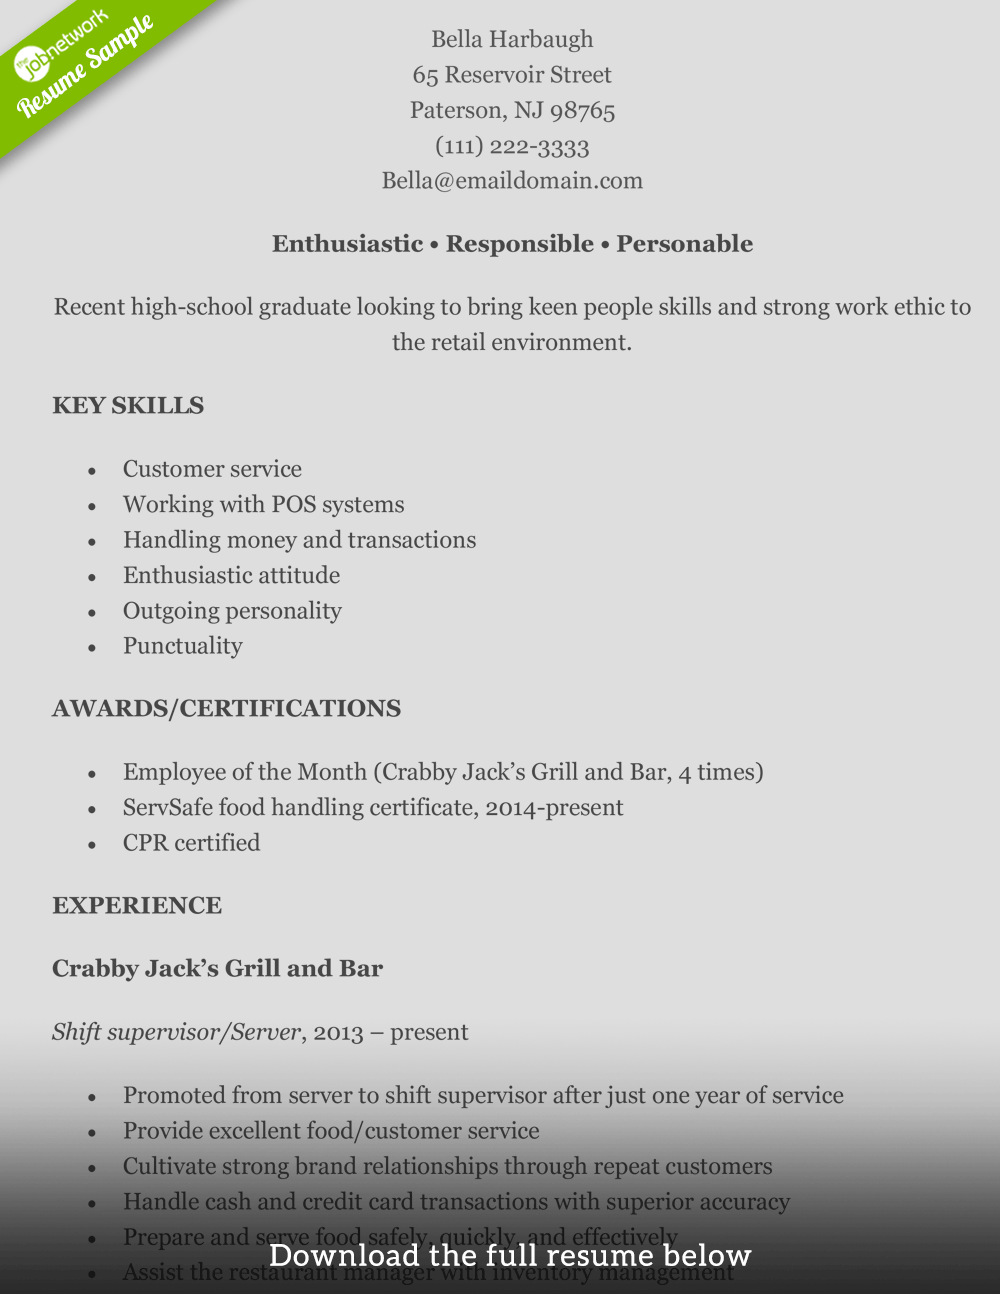 How To Write A Resumer How To Write A Perfect Retail Resume Examples Included